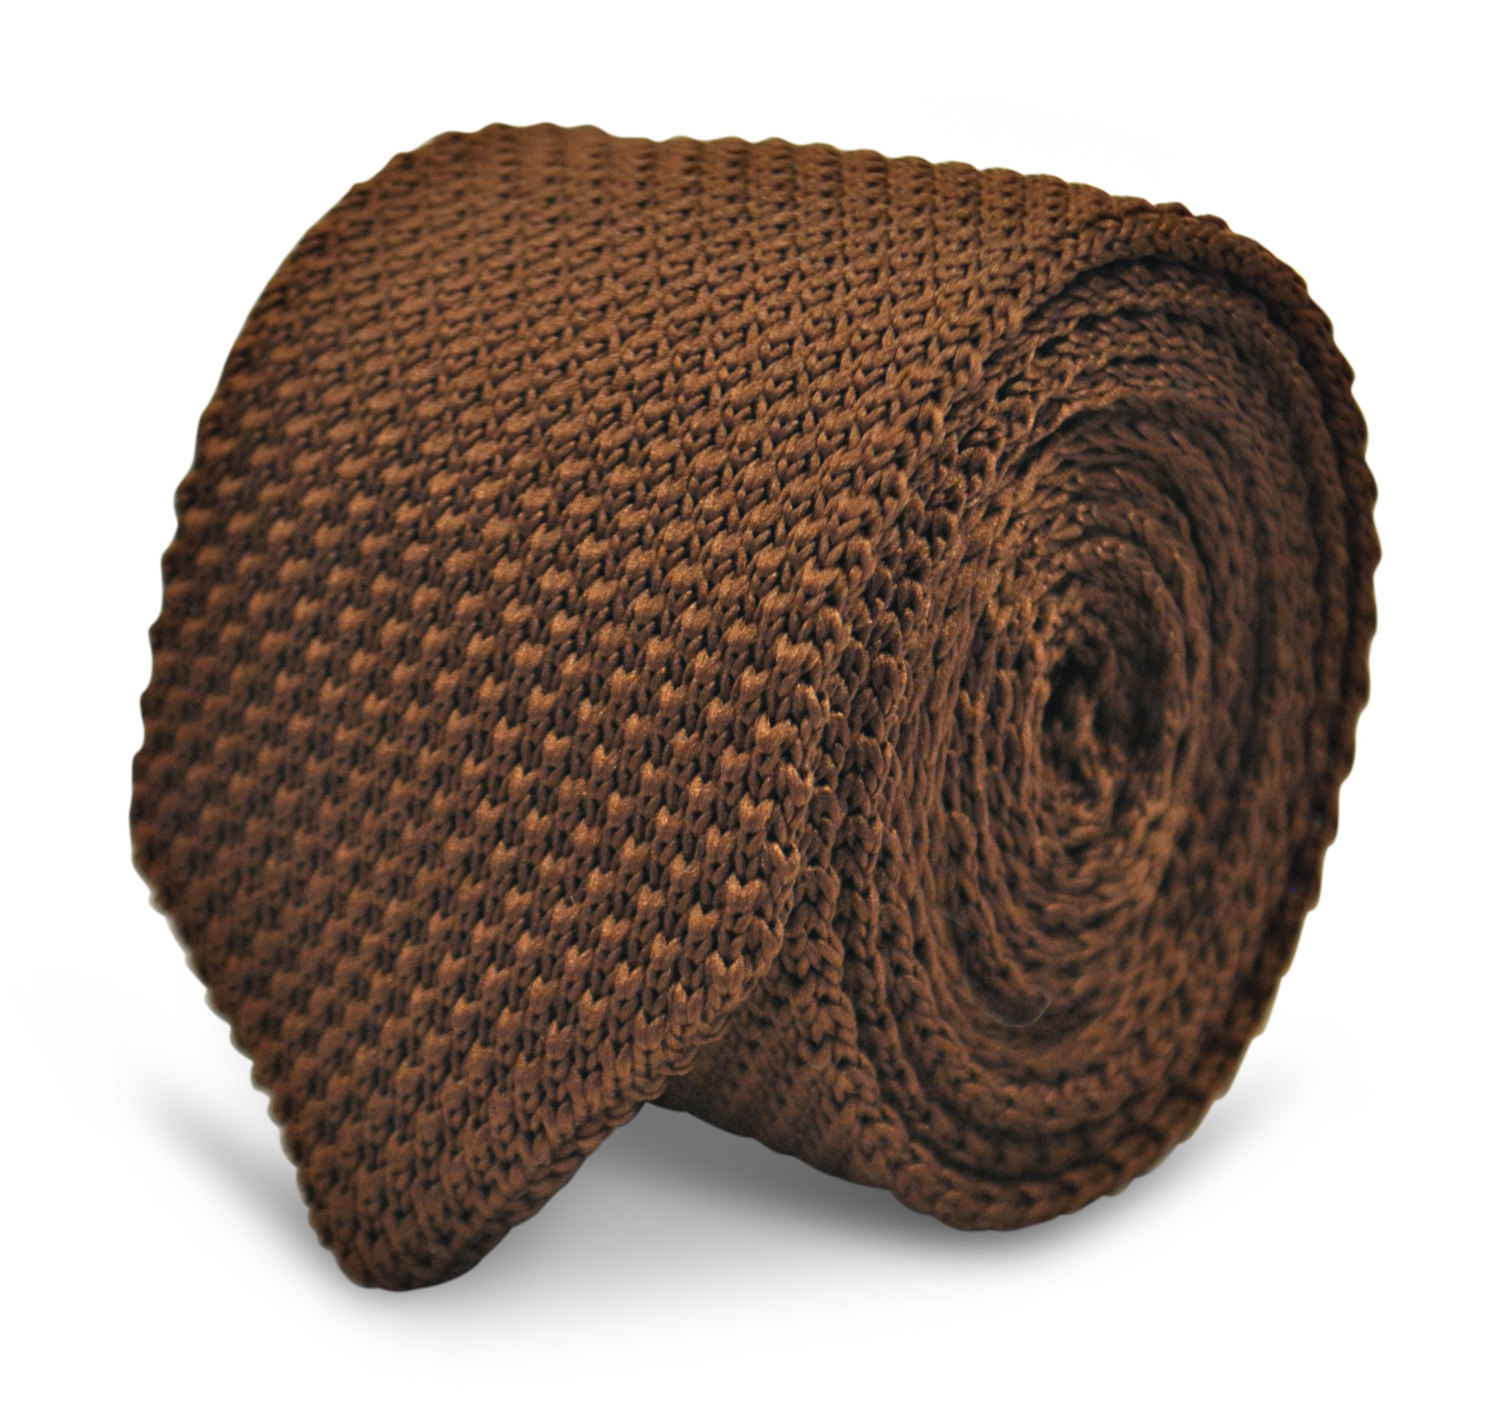 chocolate brown knitted wool tie with pointed end by Frederick Thomas in standar